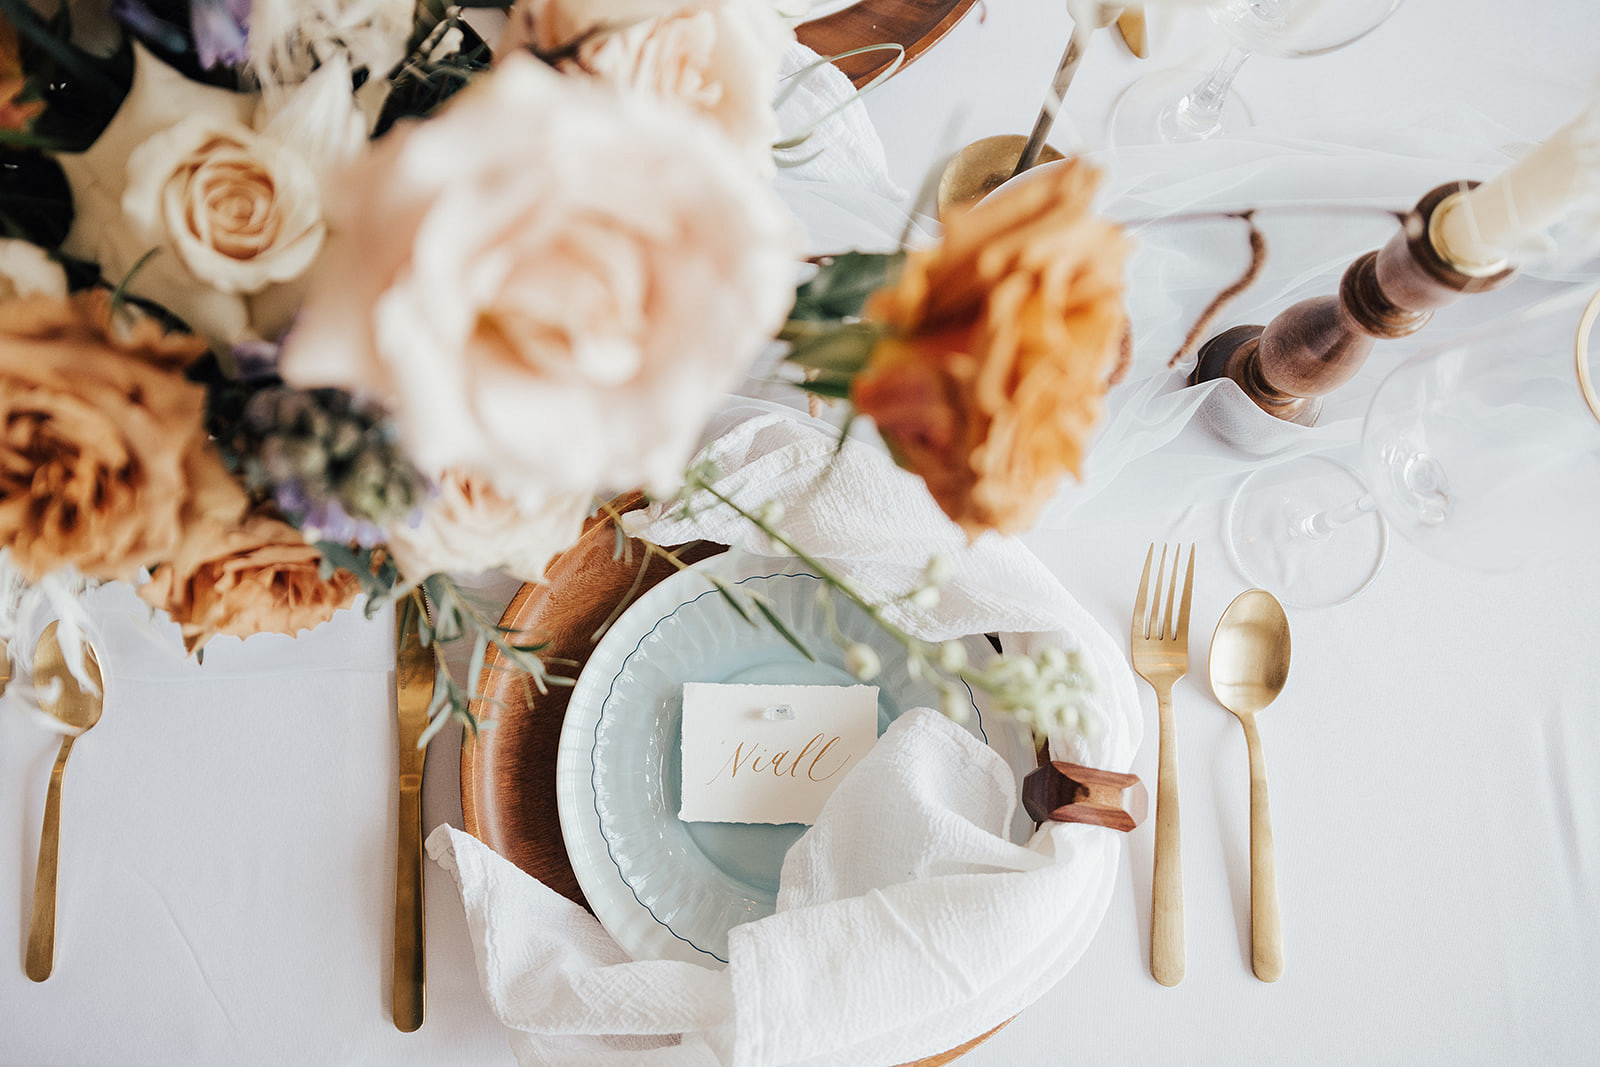 florals above a table setting with soft blue plates, gold utensils, and a place card that reads 'Niall'